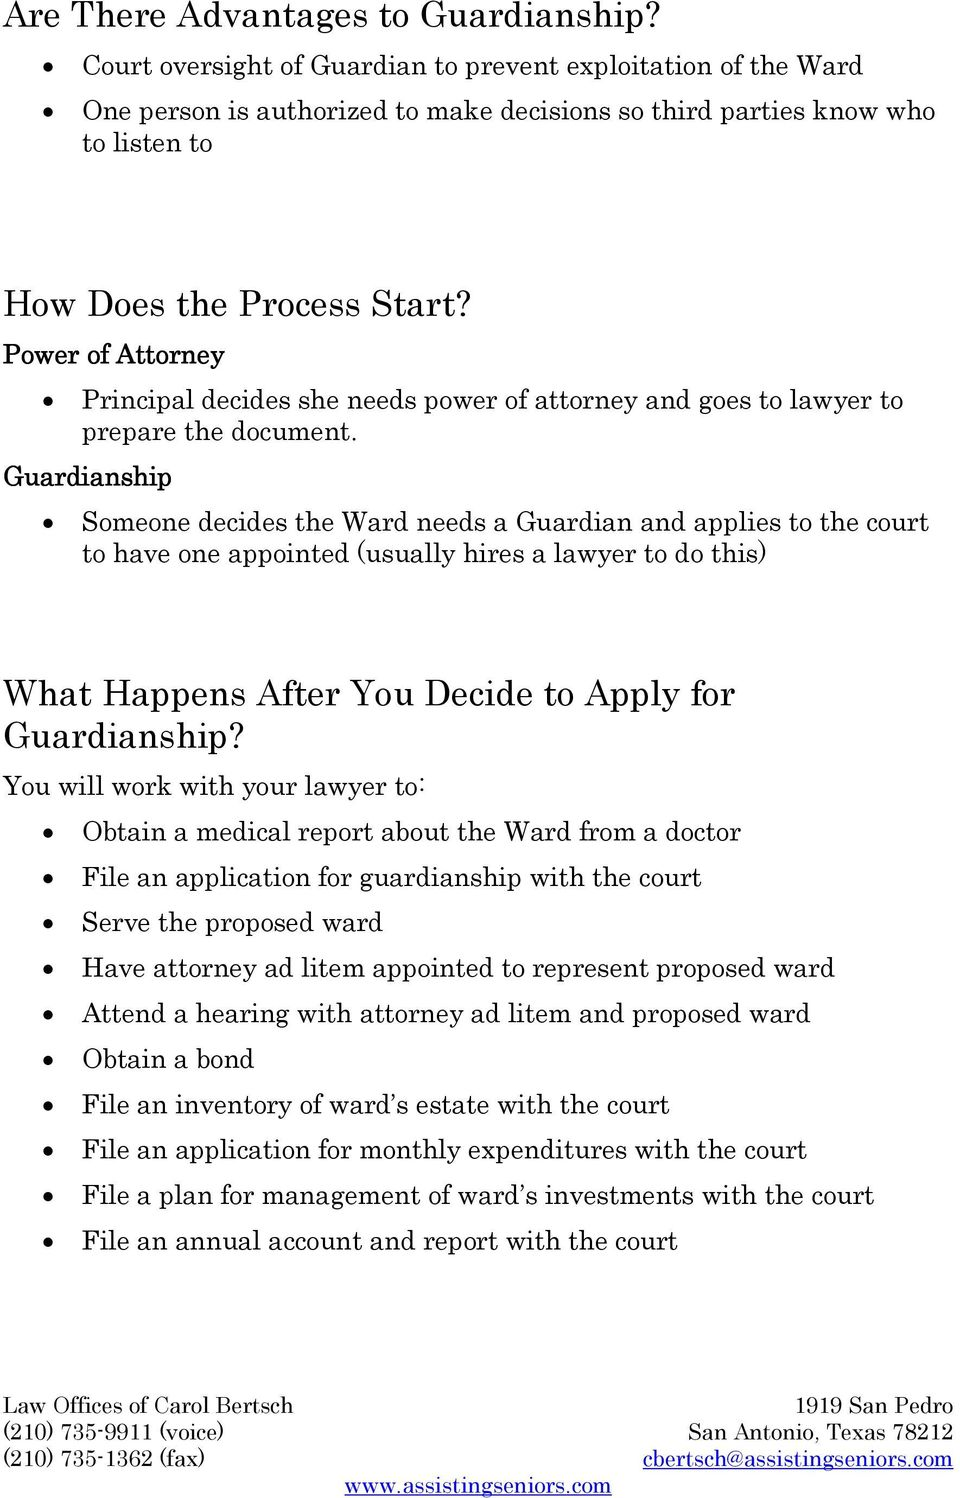 Someone decides the Ward needs a Guardian and applies to the court to have one appointed (usually hires a lawyer to do this) What Happens After You Decide to Apply for?